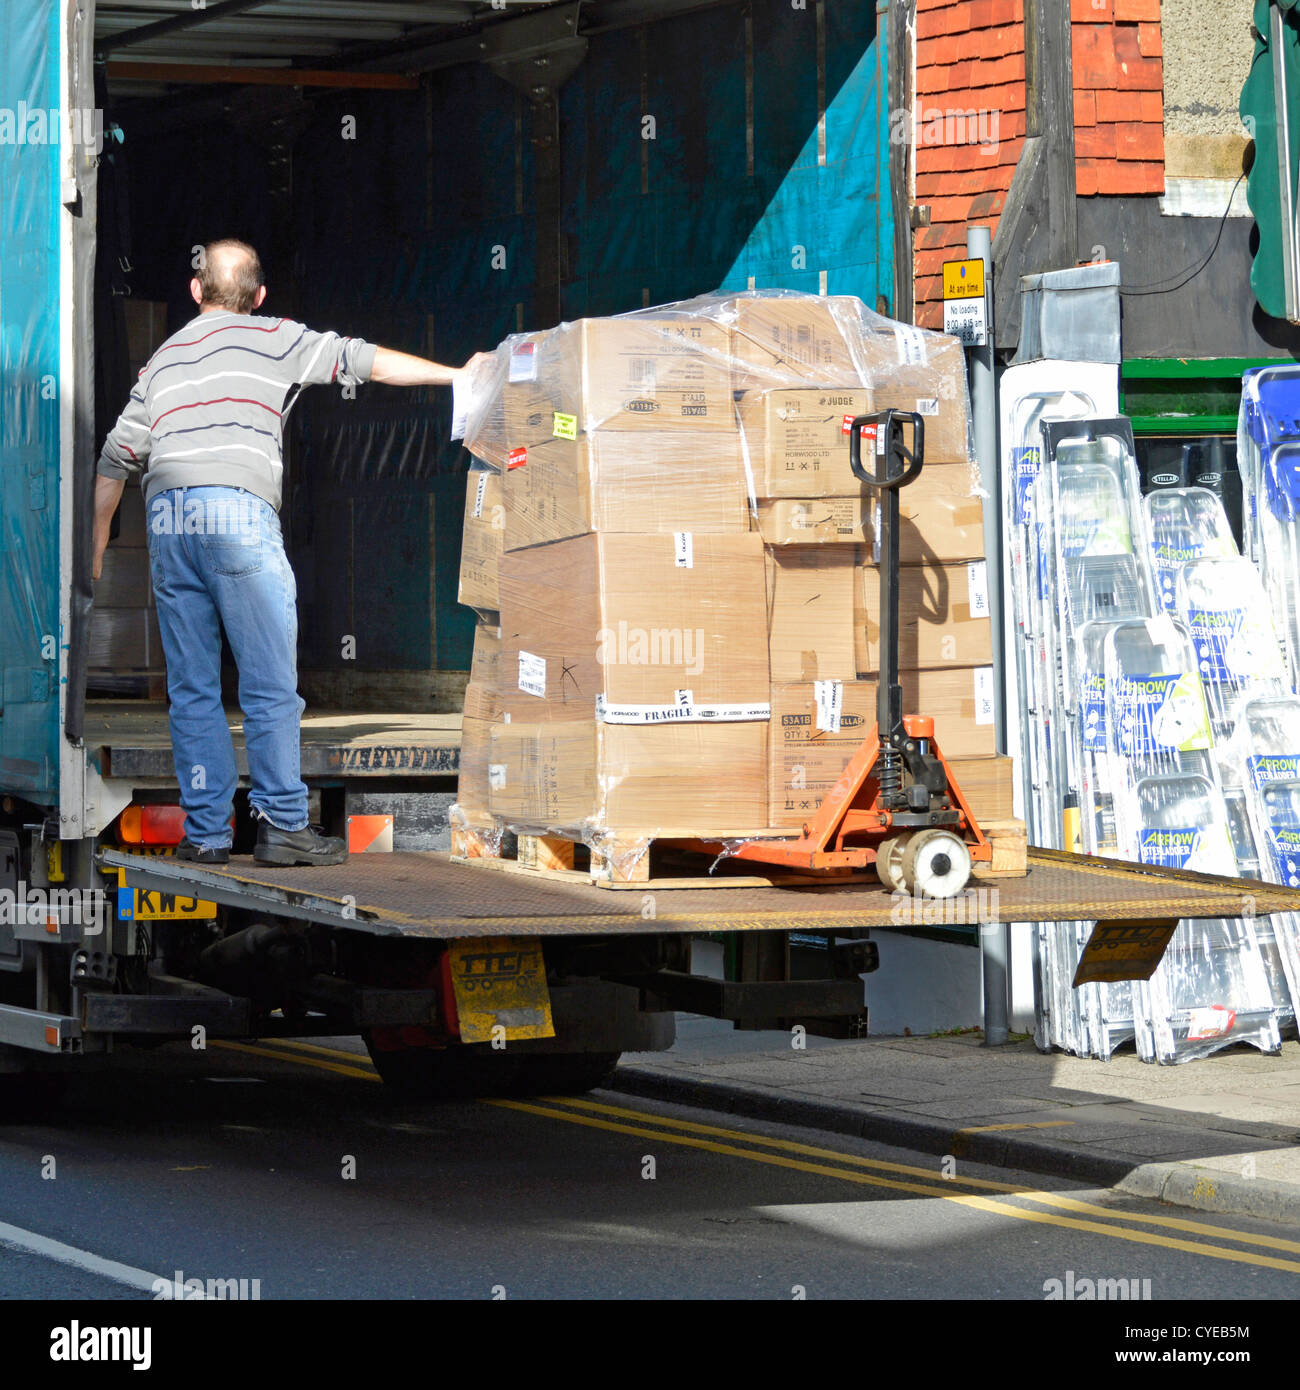 Lorry making a merchandise supplier delivery outside a High Street shop lowering to pavement using tailgate lift - Stock Image